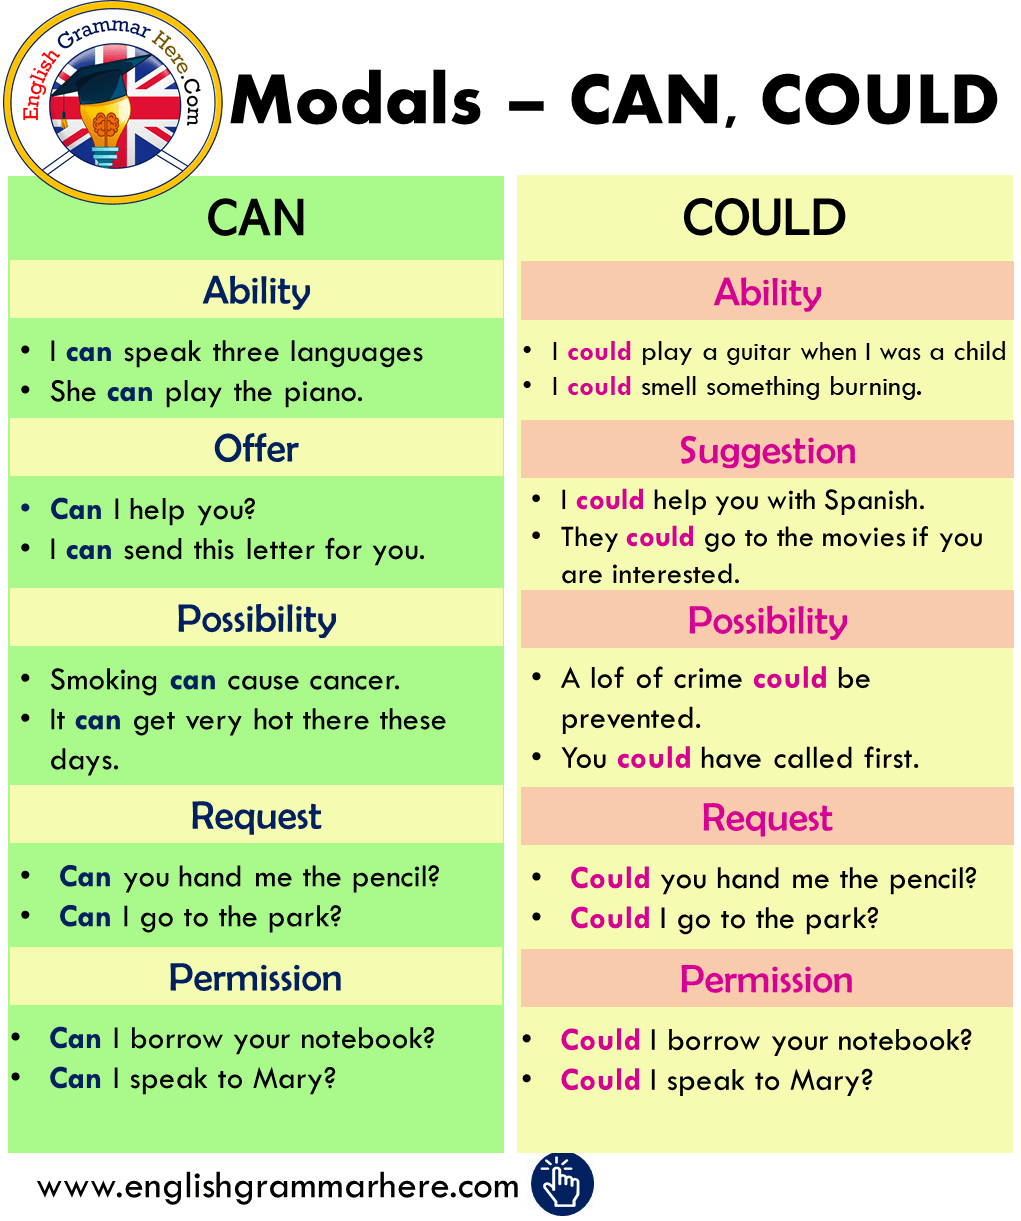 Modals – Using CAN and COULD in English